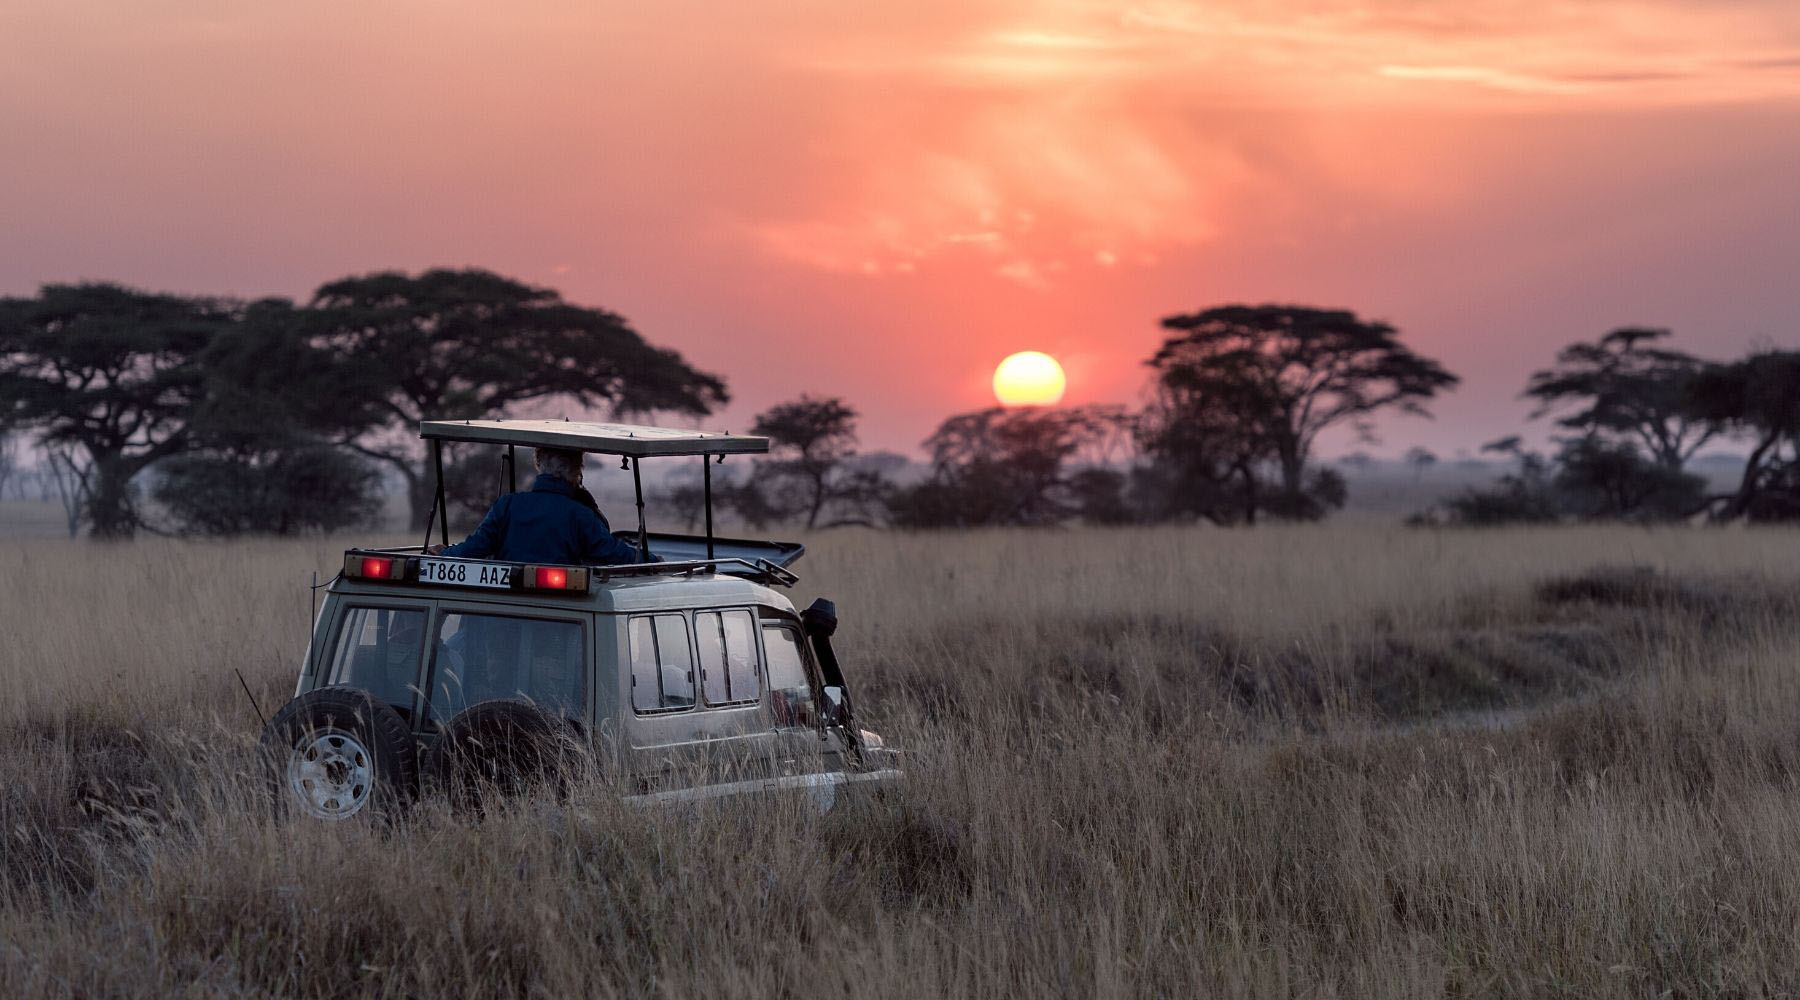 Animals to look out for on an African safari (besides the Big Five)